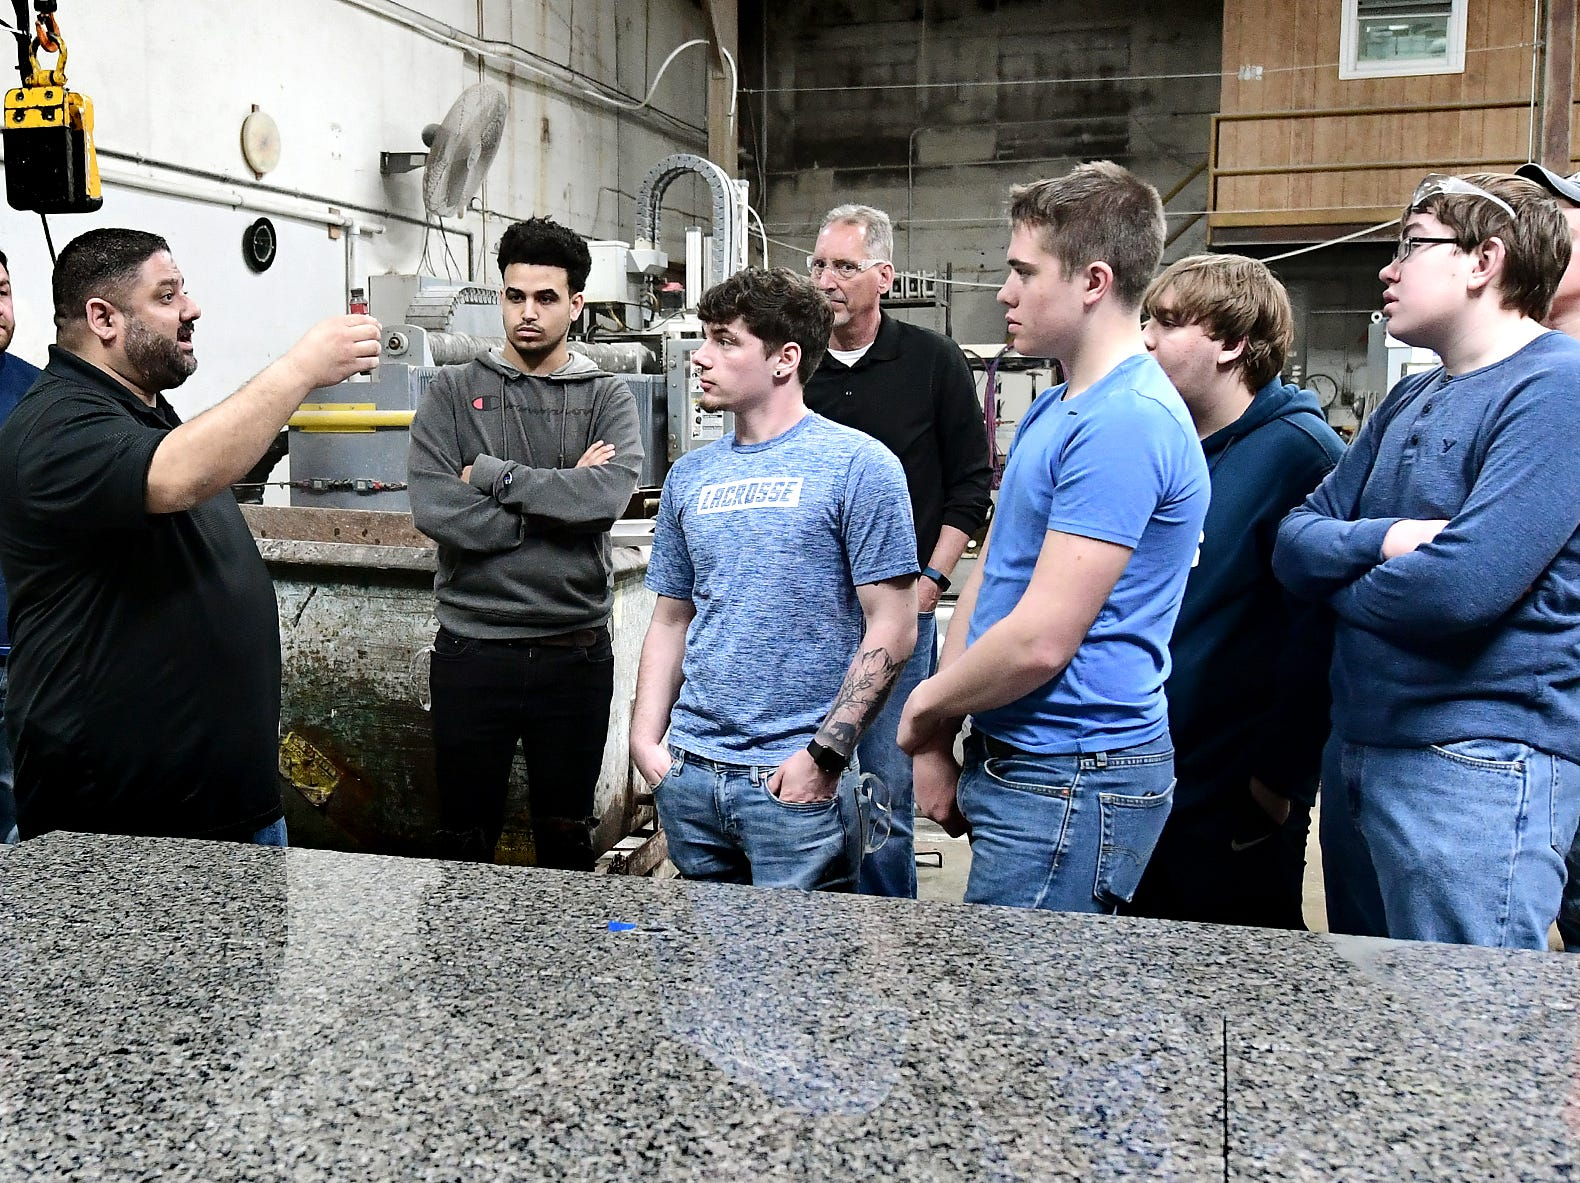 Frank's Marble & Granite owner Carmine Pantano, left, presents a cutting demonstration to students during a tour of the Red Lion business during the York Builders Association 2nd Annual Construction Career Day Monday, April 8, 2019. The goal of the program is to raise student-awareness about local career opportunities in the construction field. Association members host the students. The association has planned similar events at various companies through April 17. Nine area high schools are participating in the program, according to the builders association. Bill Kalina photo